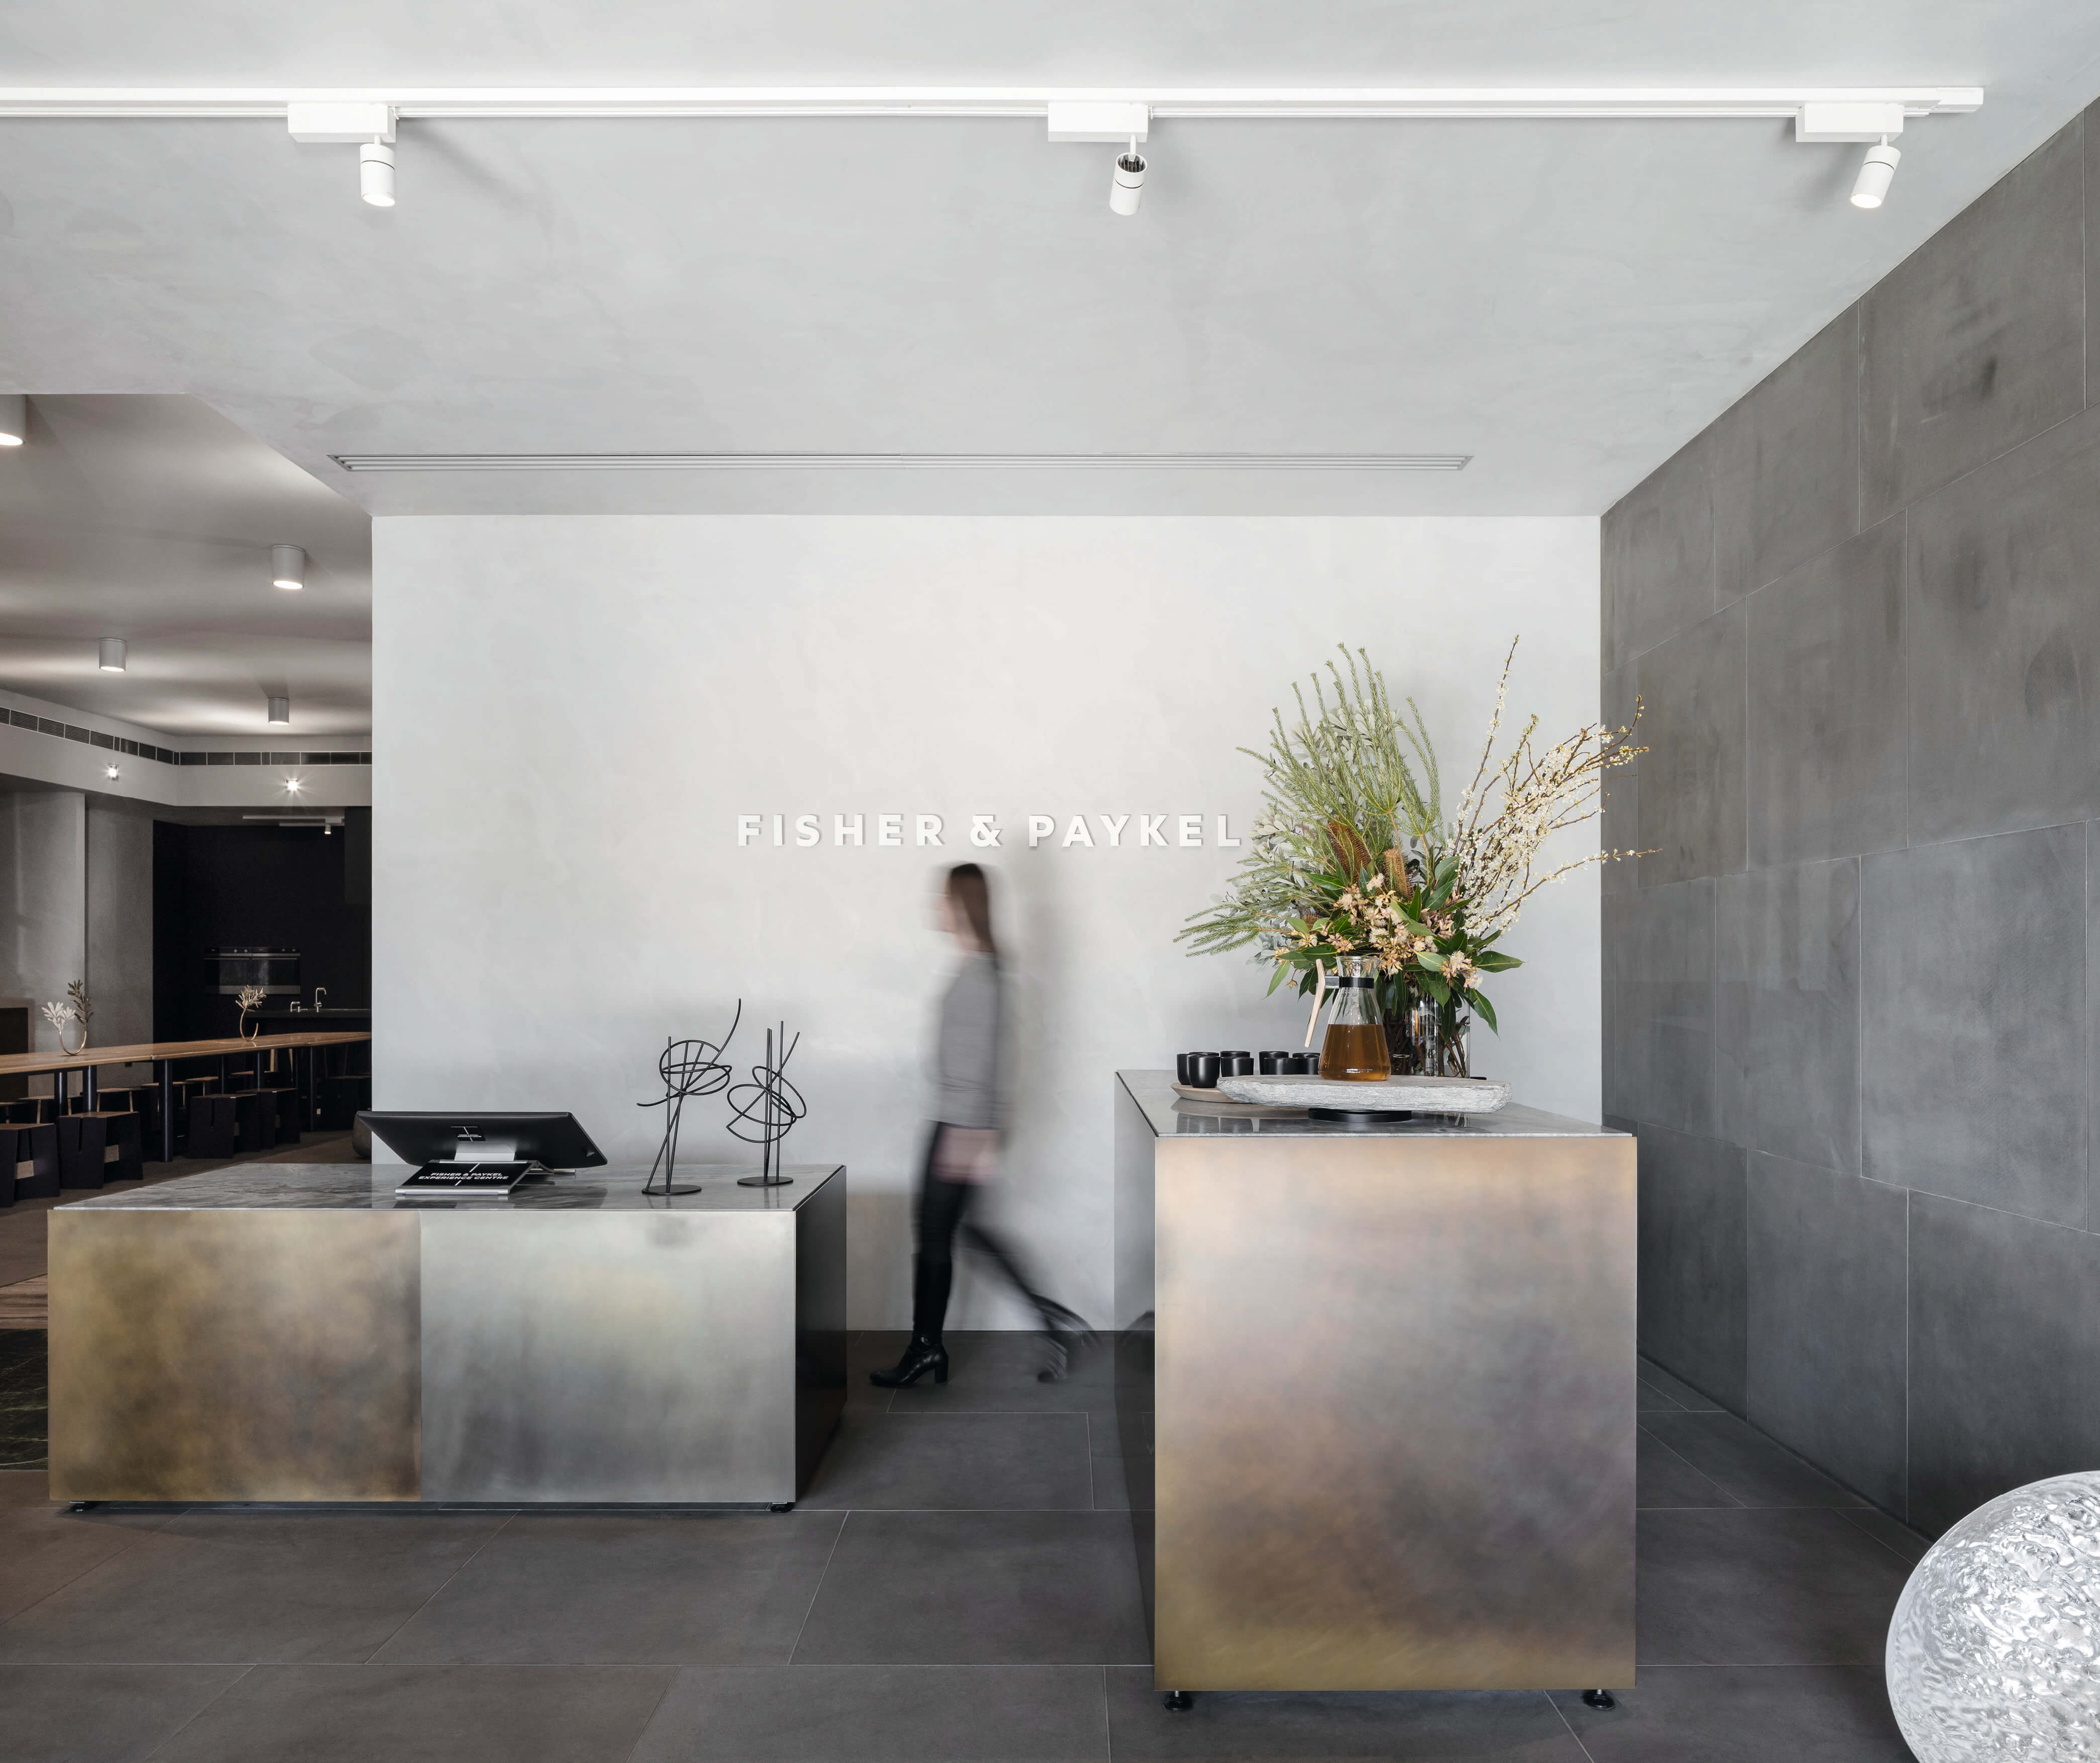 Gallery Of Column Refrigerators And Freezers By Fisher & Paykel Local Australian Design & Interiors Image 16